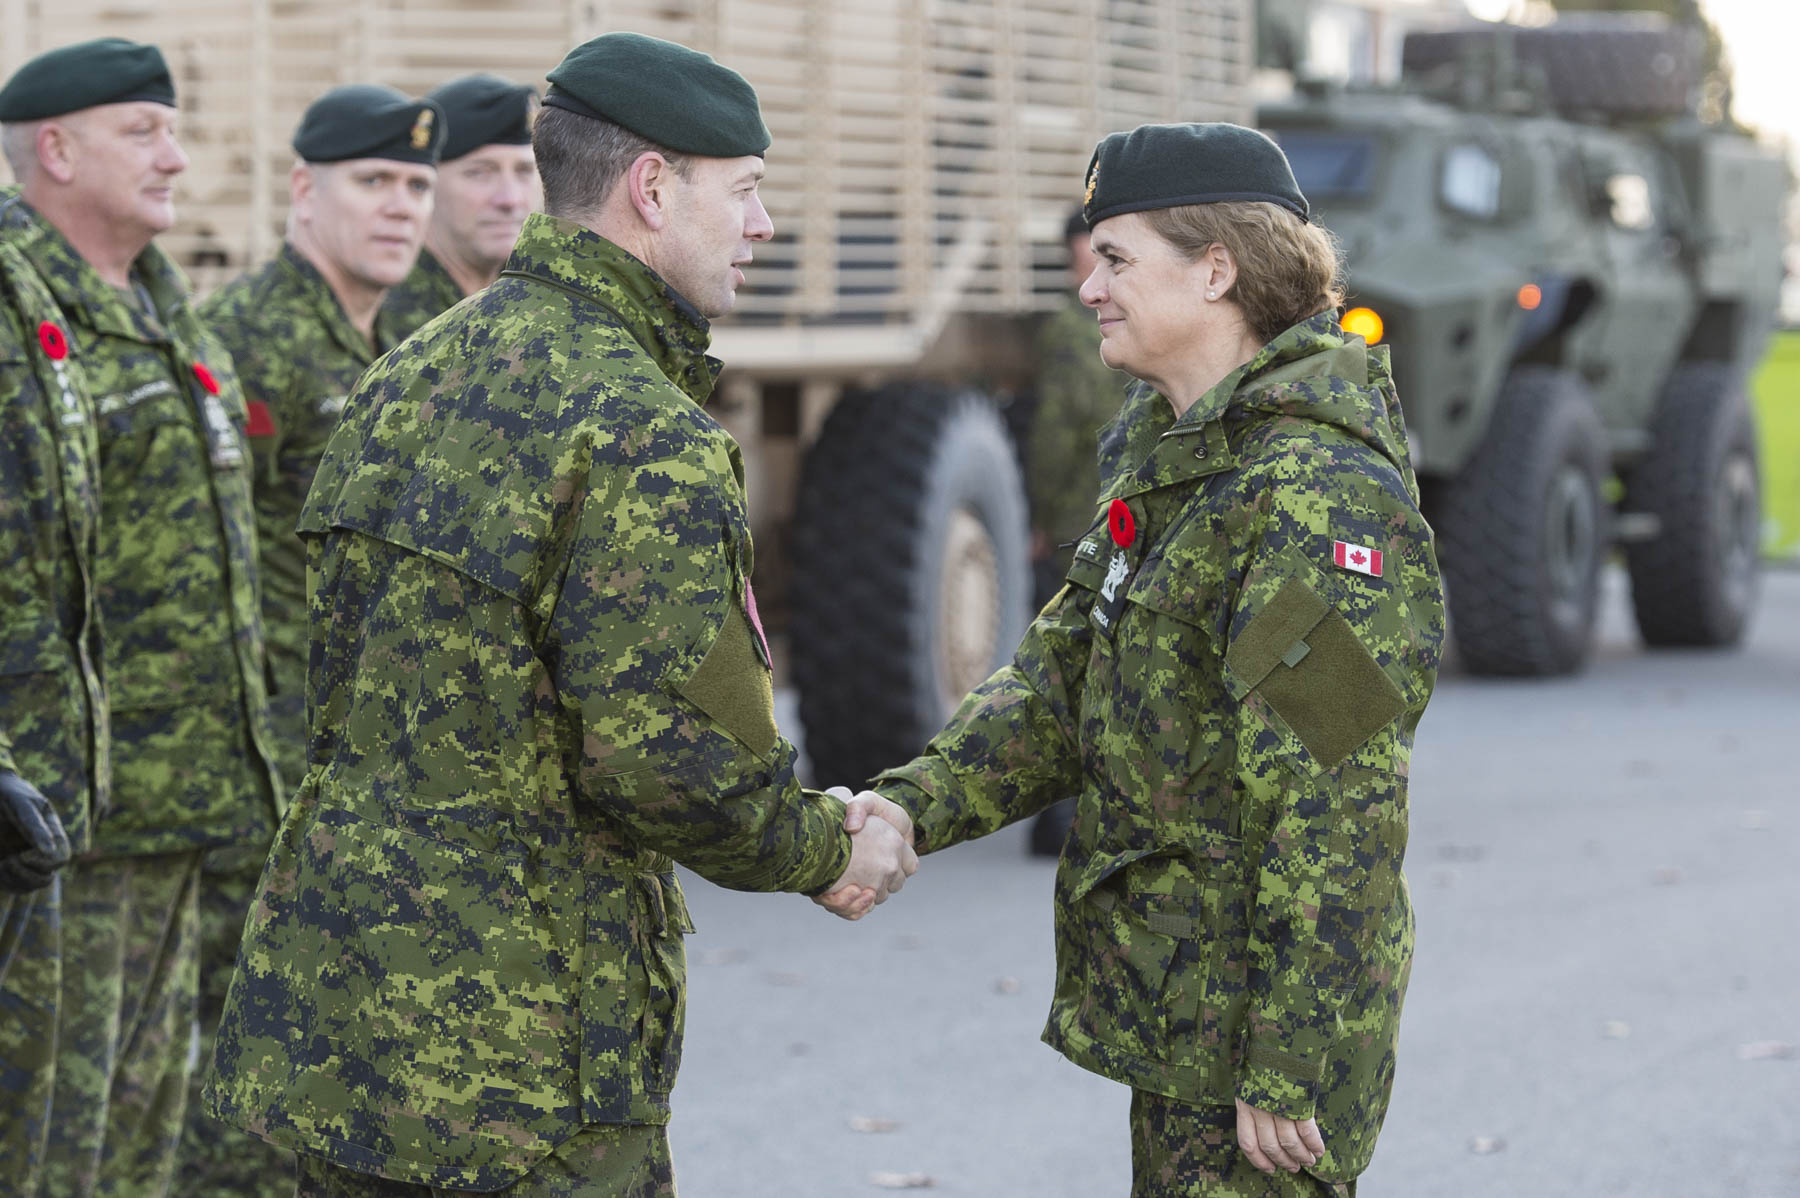 The Governor General visited 5th Canadian Division Support Base (5 CDSB) Gagetown where she met with and extended her support to the troops and their families.